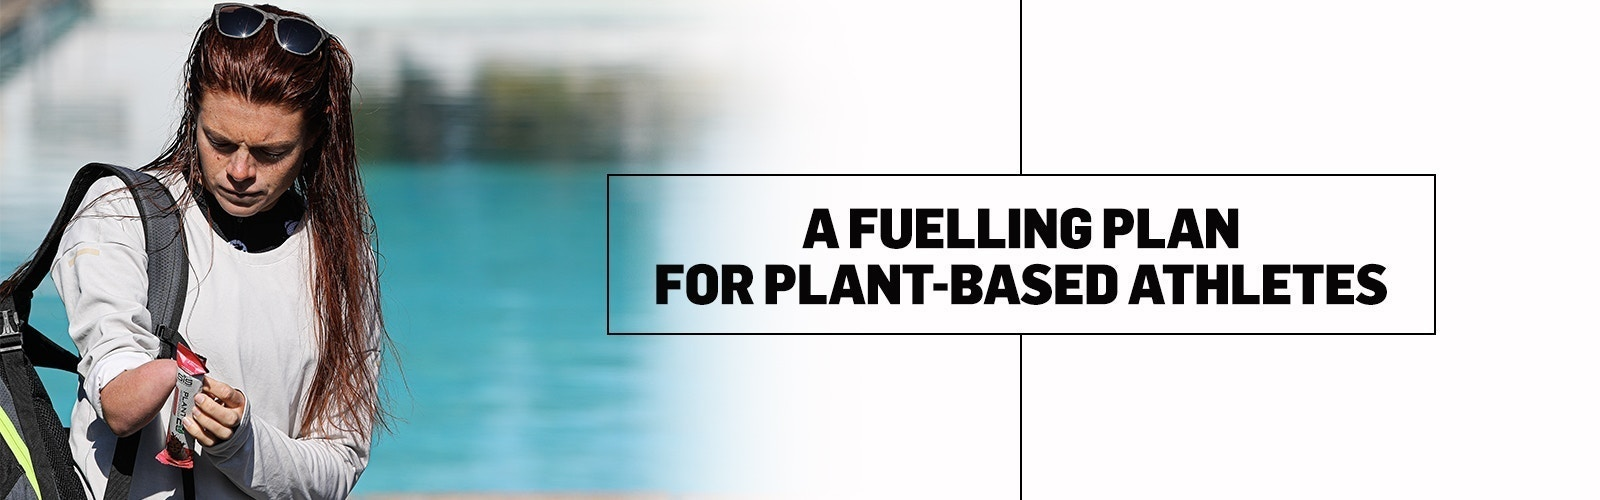 SIS - A fuelling plan for plant-based athletes